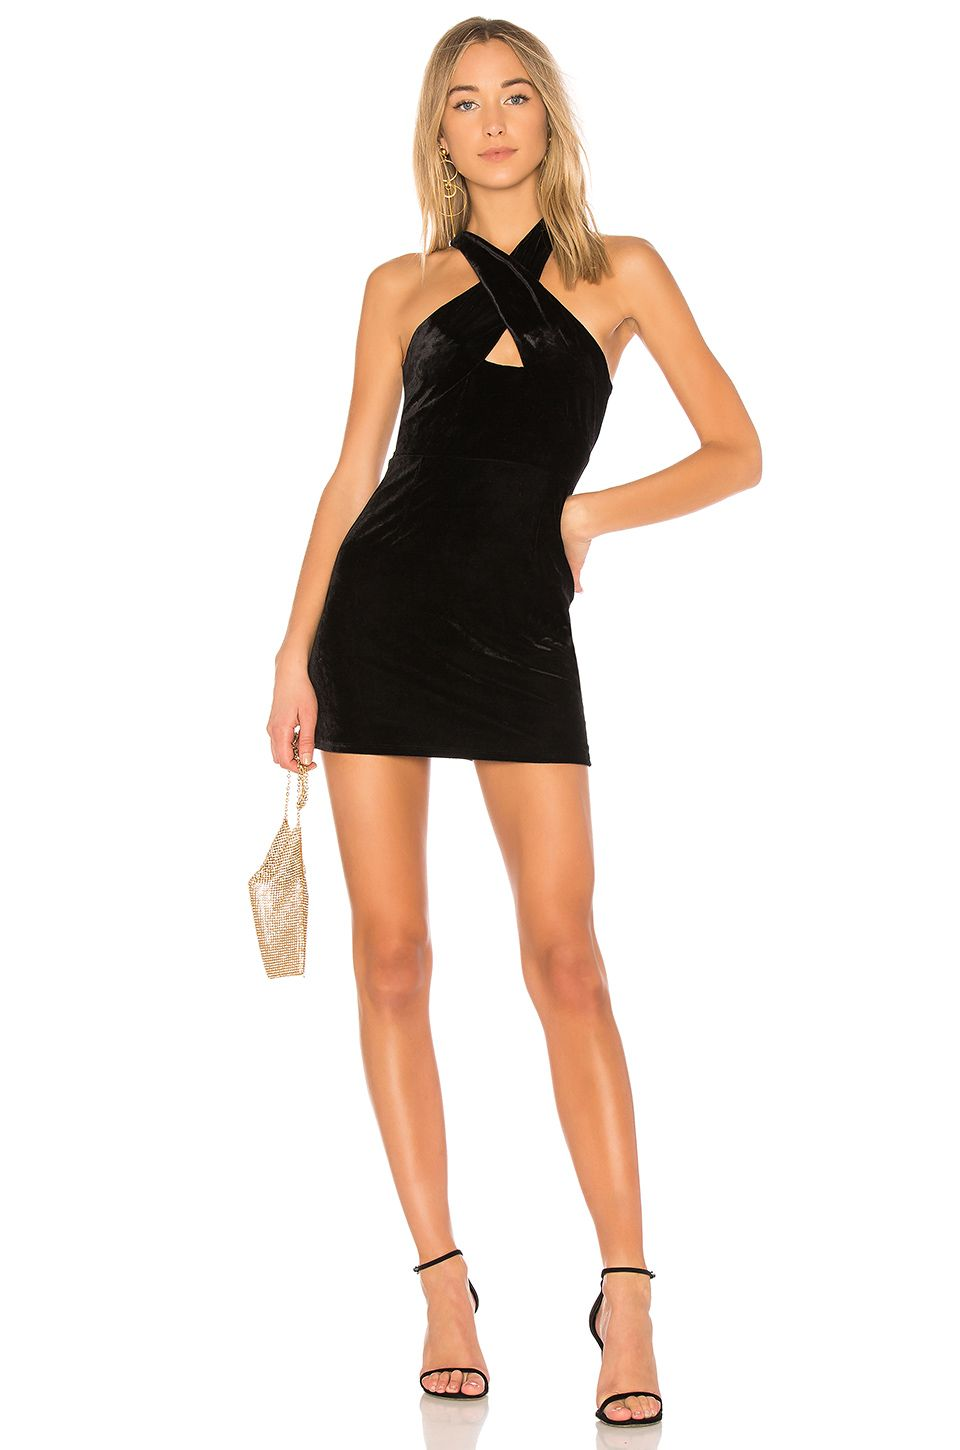 NBD Bel Air Gown in Black. | Revolve clothing, Gowns, Pop